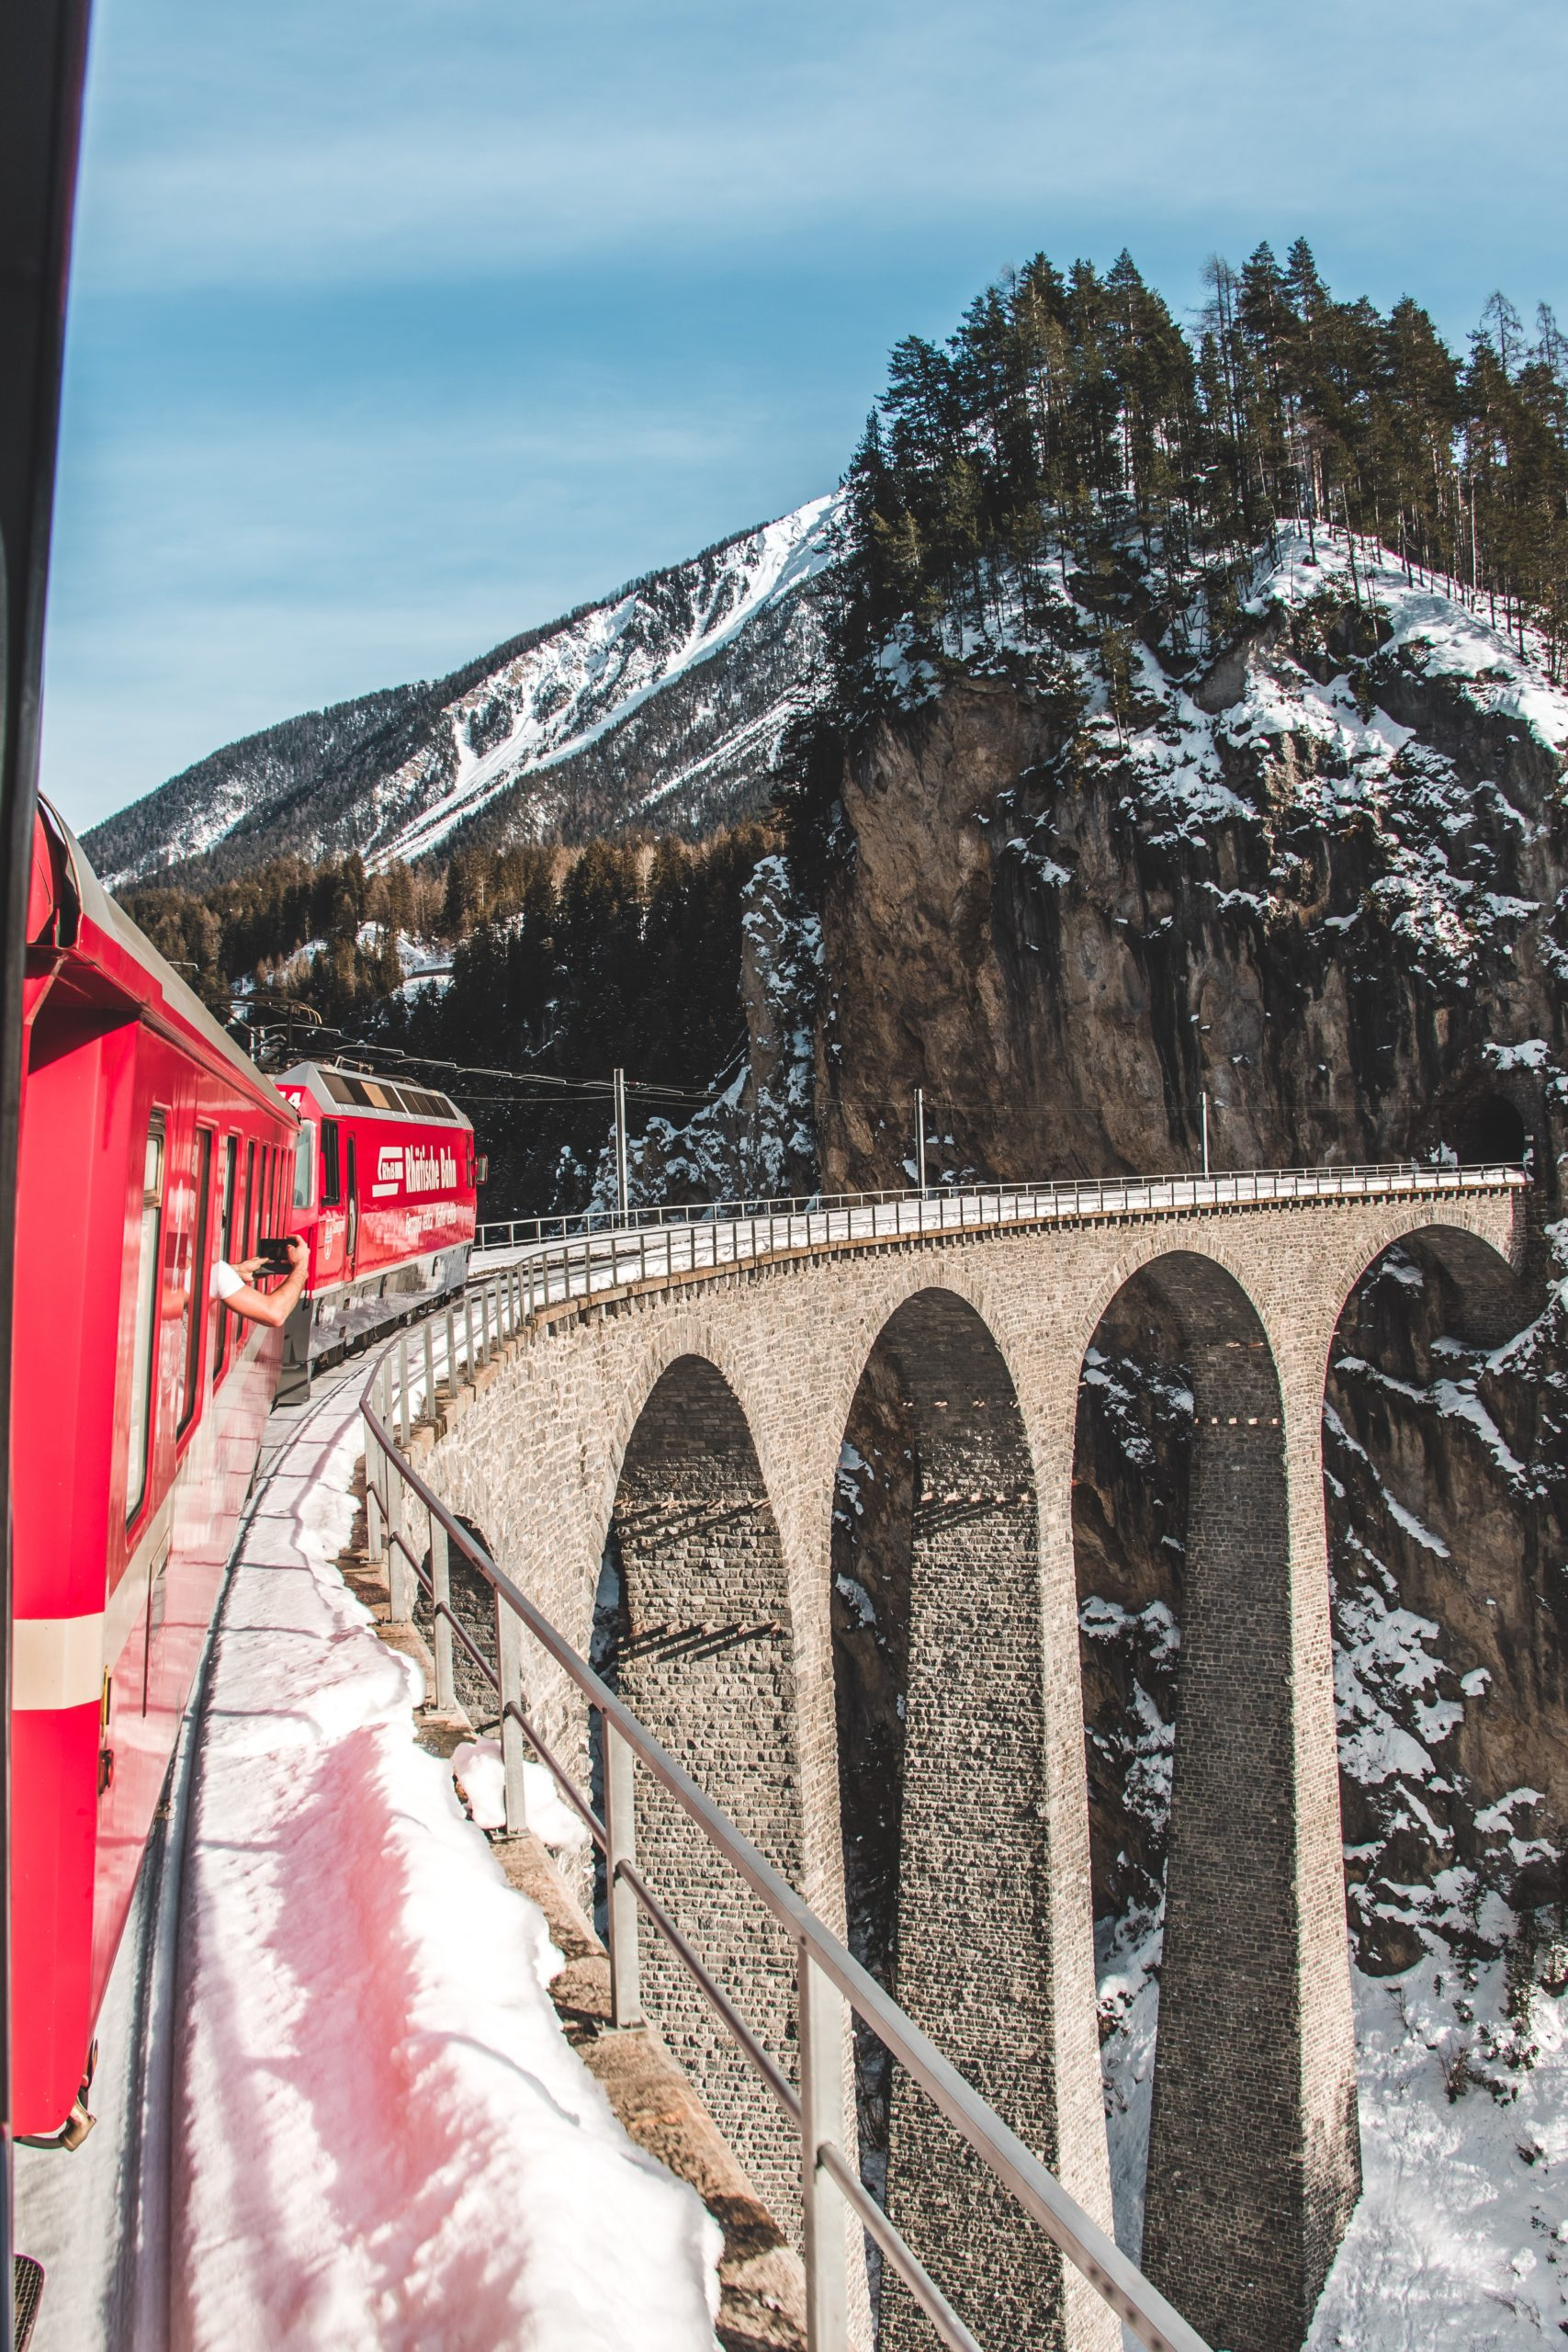 Travel with a scenic train